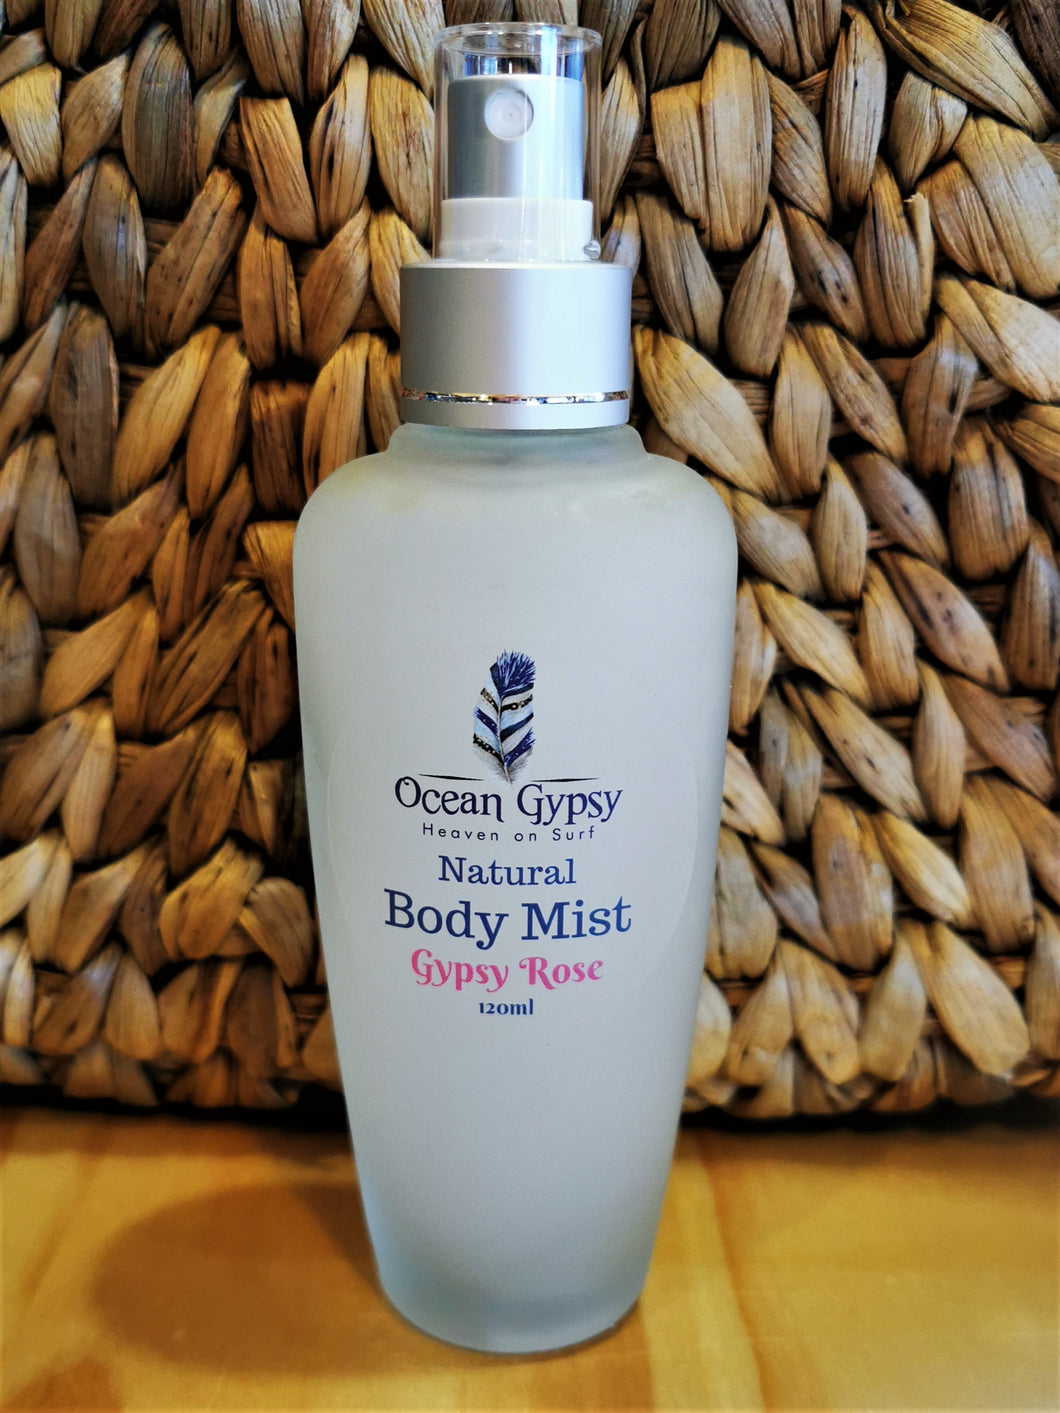 Ocean Gypsy Body Mist in Gypsy Rose Scent - Ocean Gypsy NZ